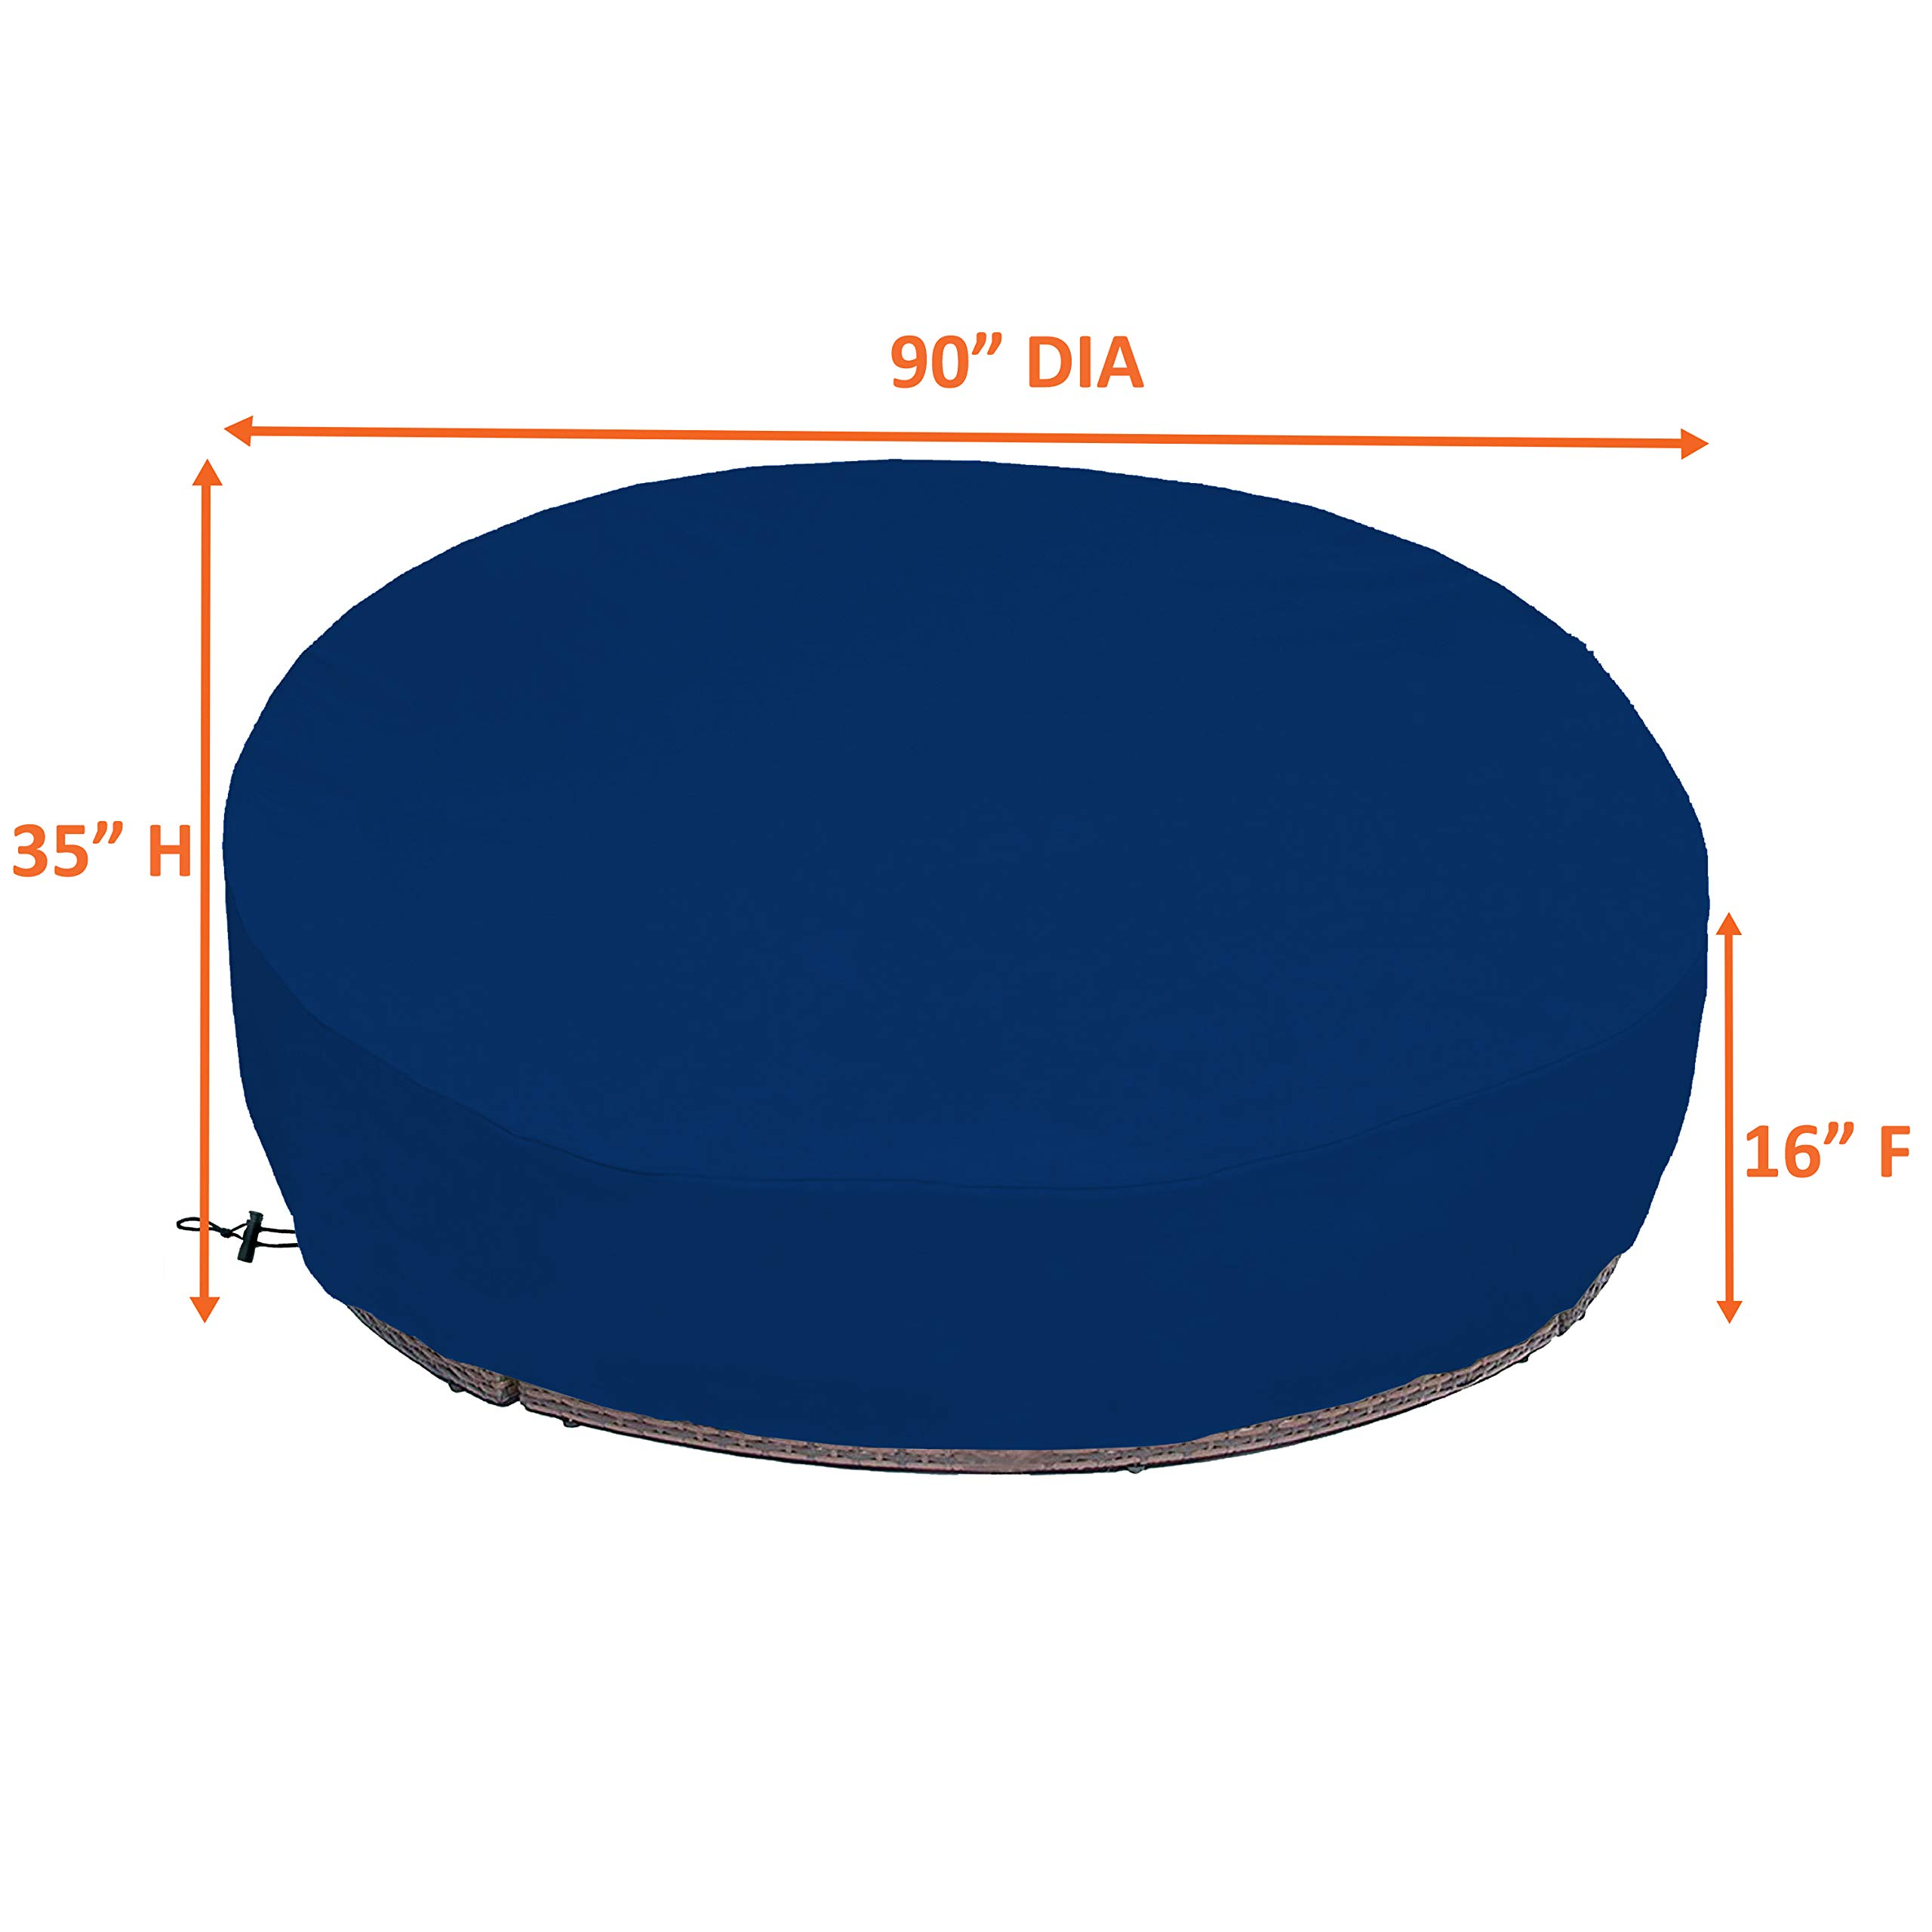 COVERS & ALL Outdoor Daybed Cover 18 Oz Waterproof - 100% UV & Weather Resistant Patio Furniture Cover with Air Pockets and Drawstring for Snug fit (Blue) by COVERS & ALL (Image #3)